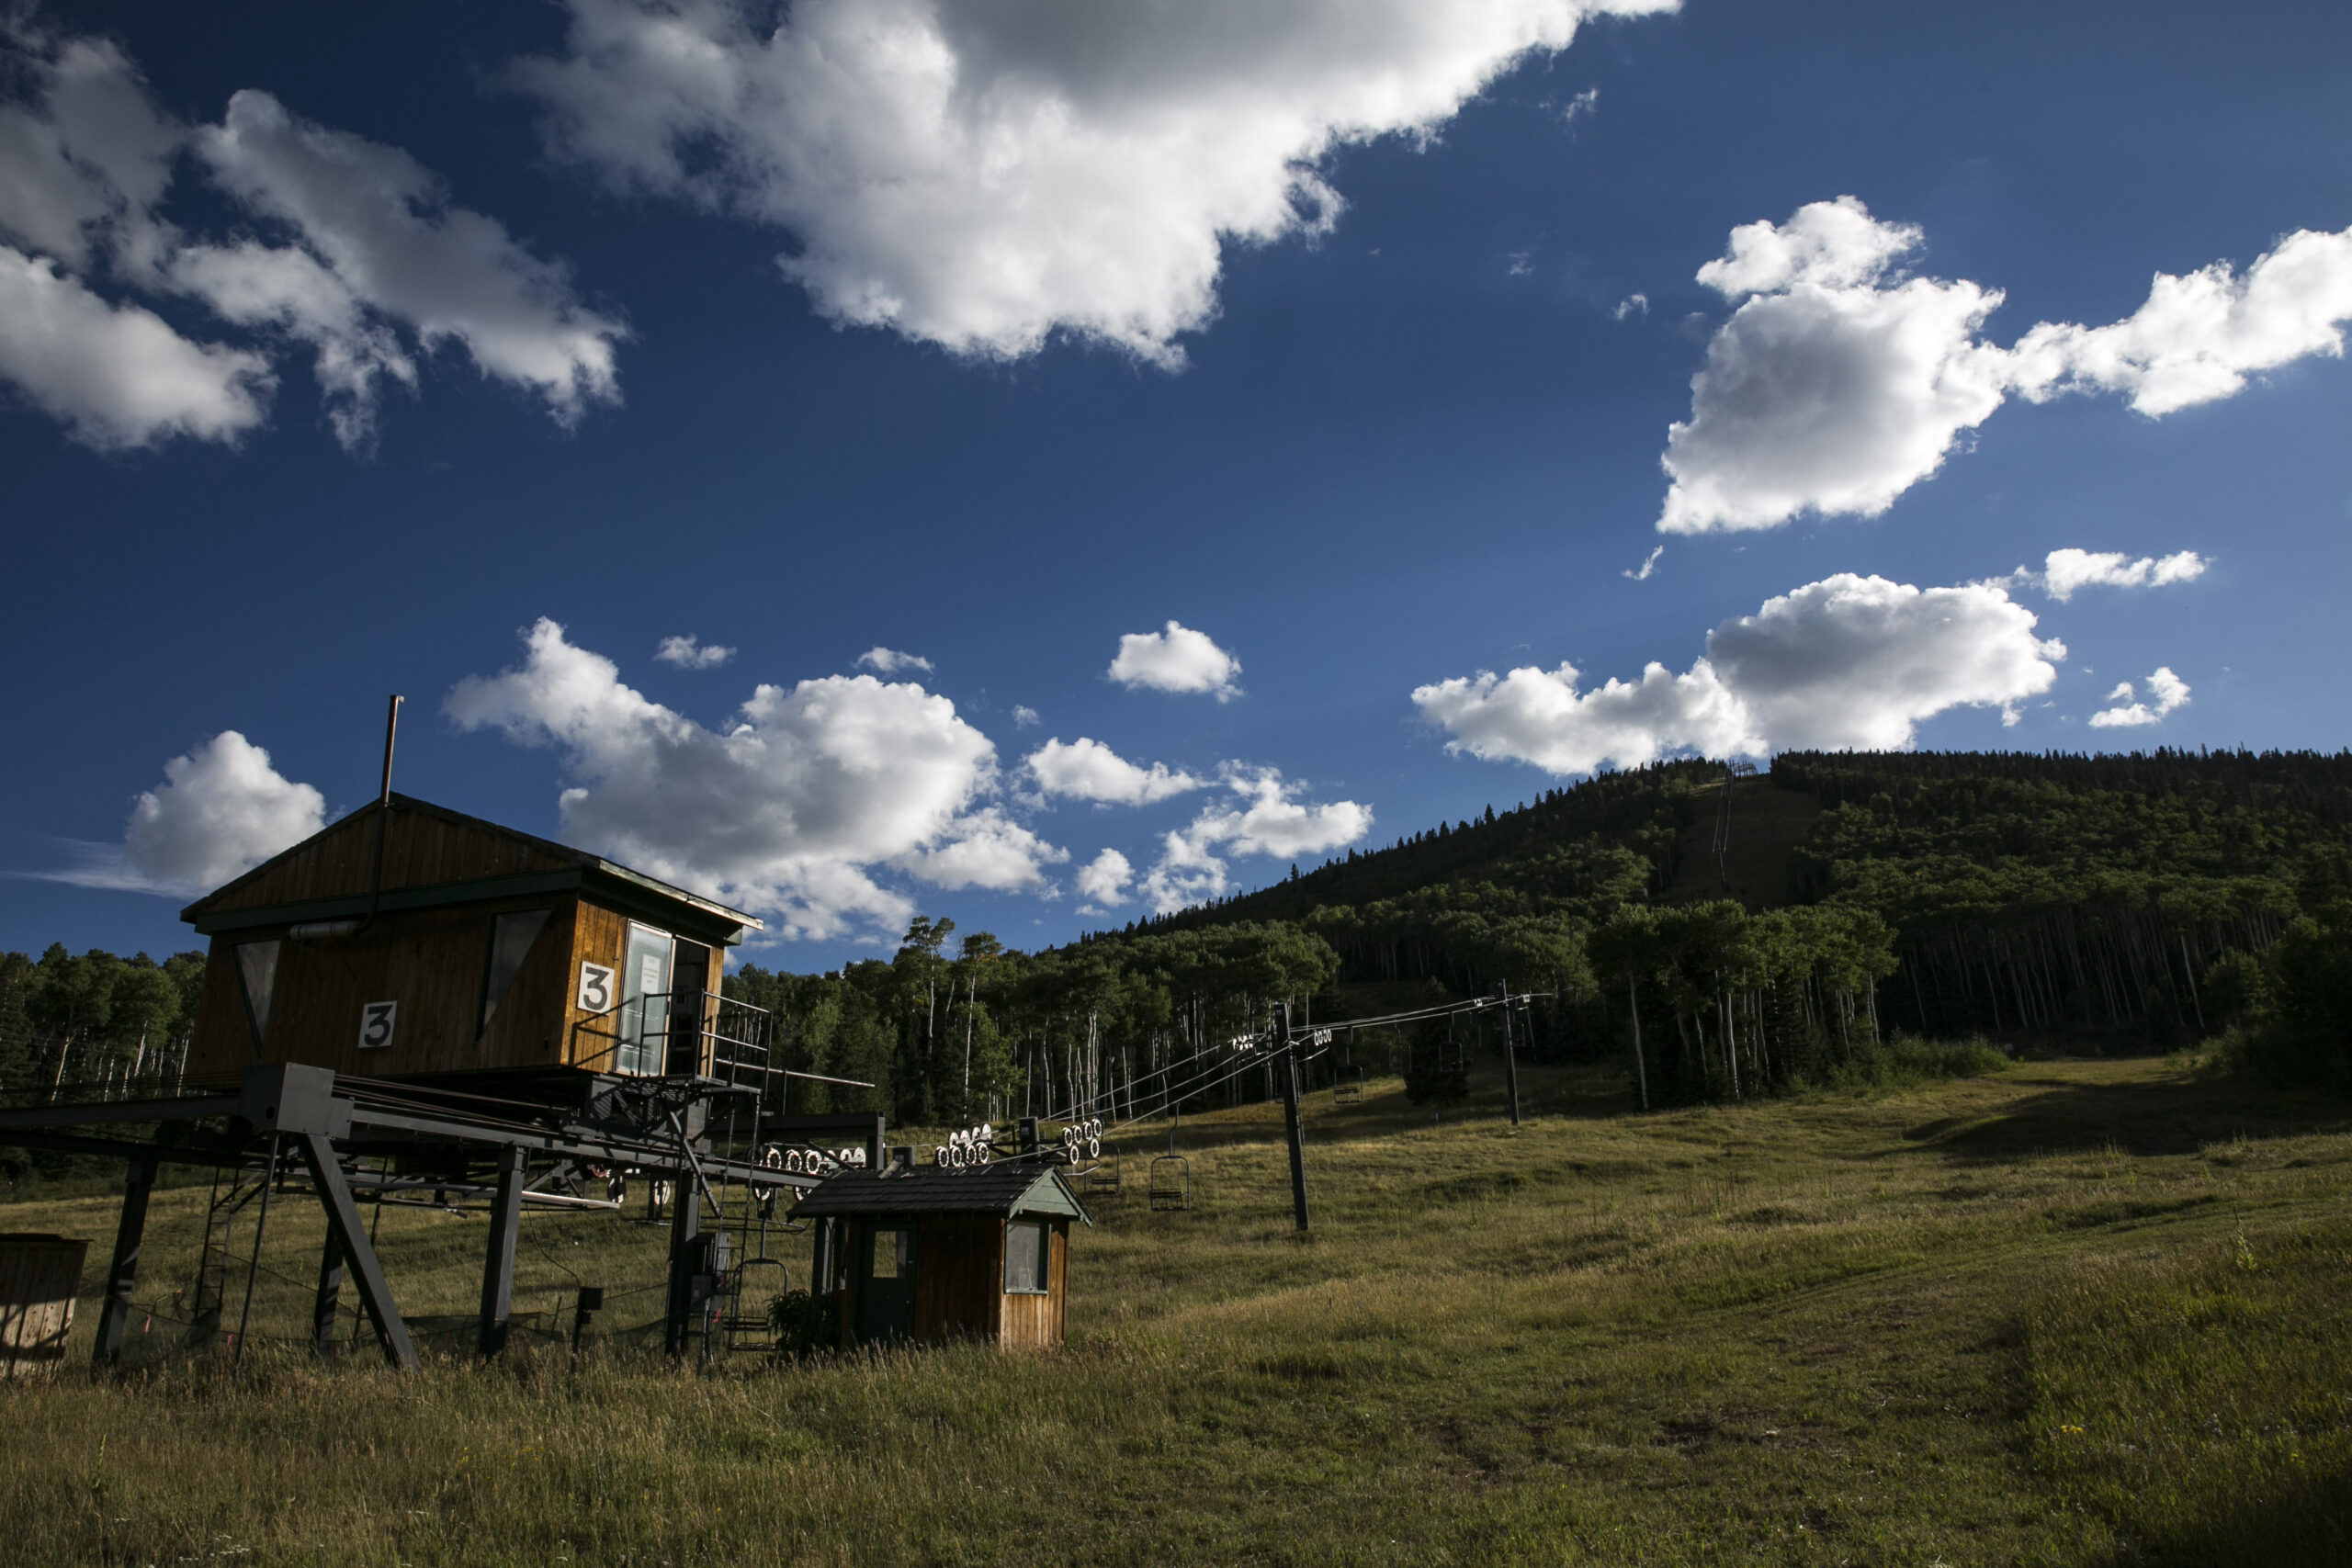 A lift at the old Cuchara Mountain ski area in Southern Colorado in August 2018.